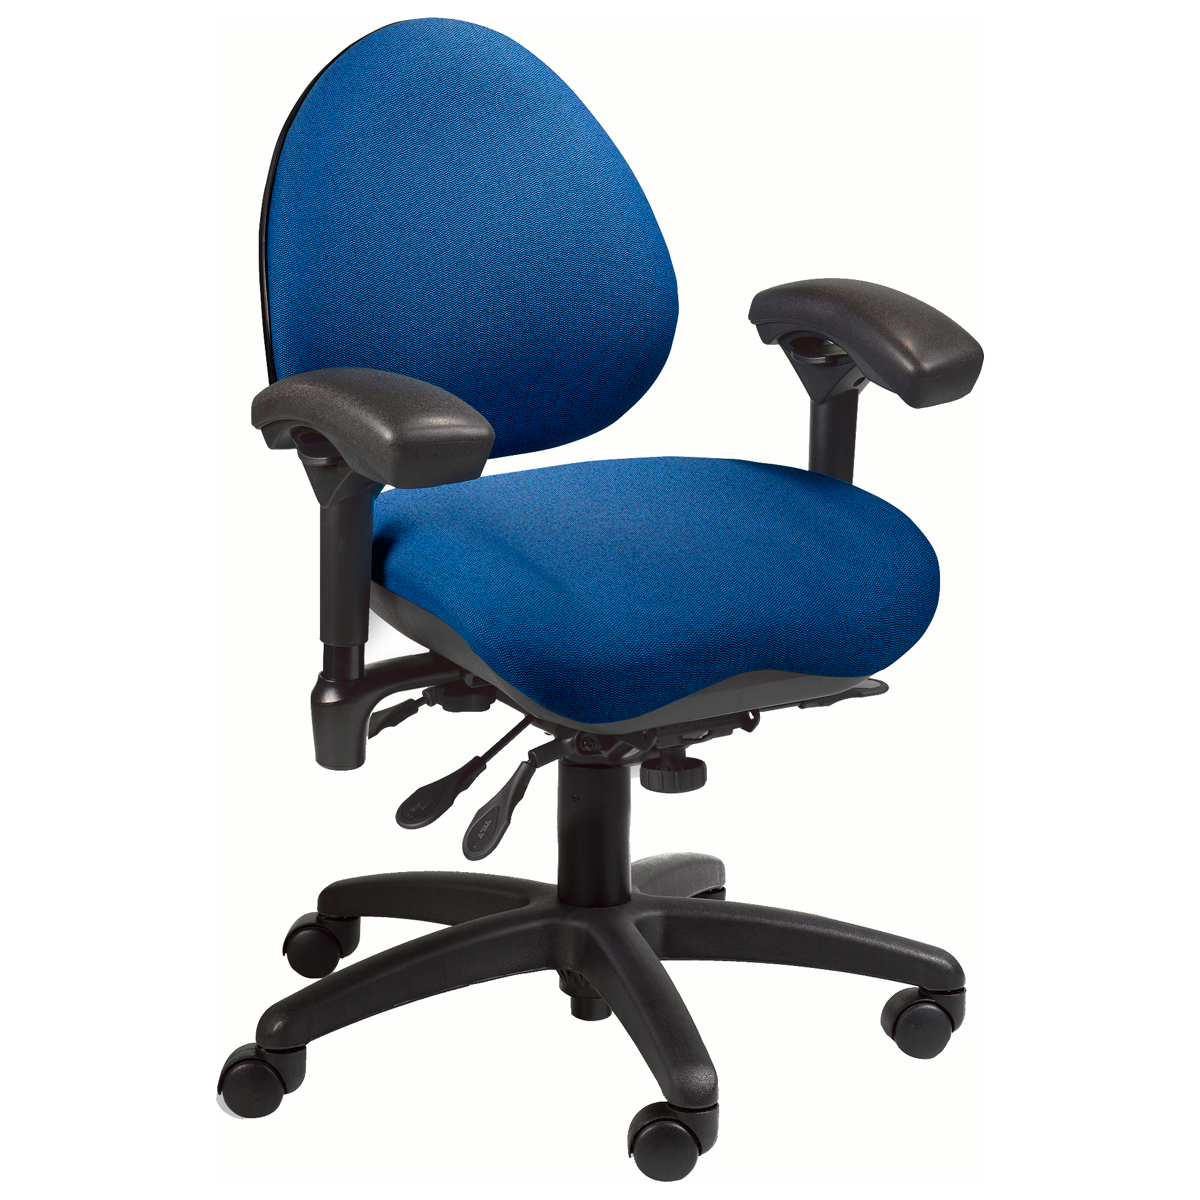 most ergonomic chair